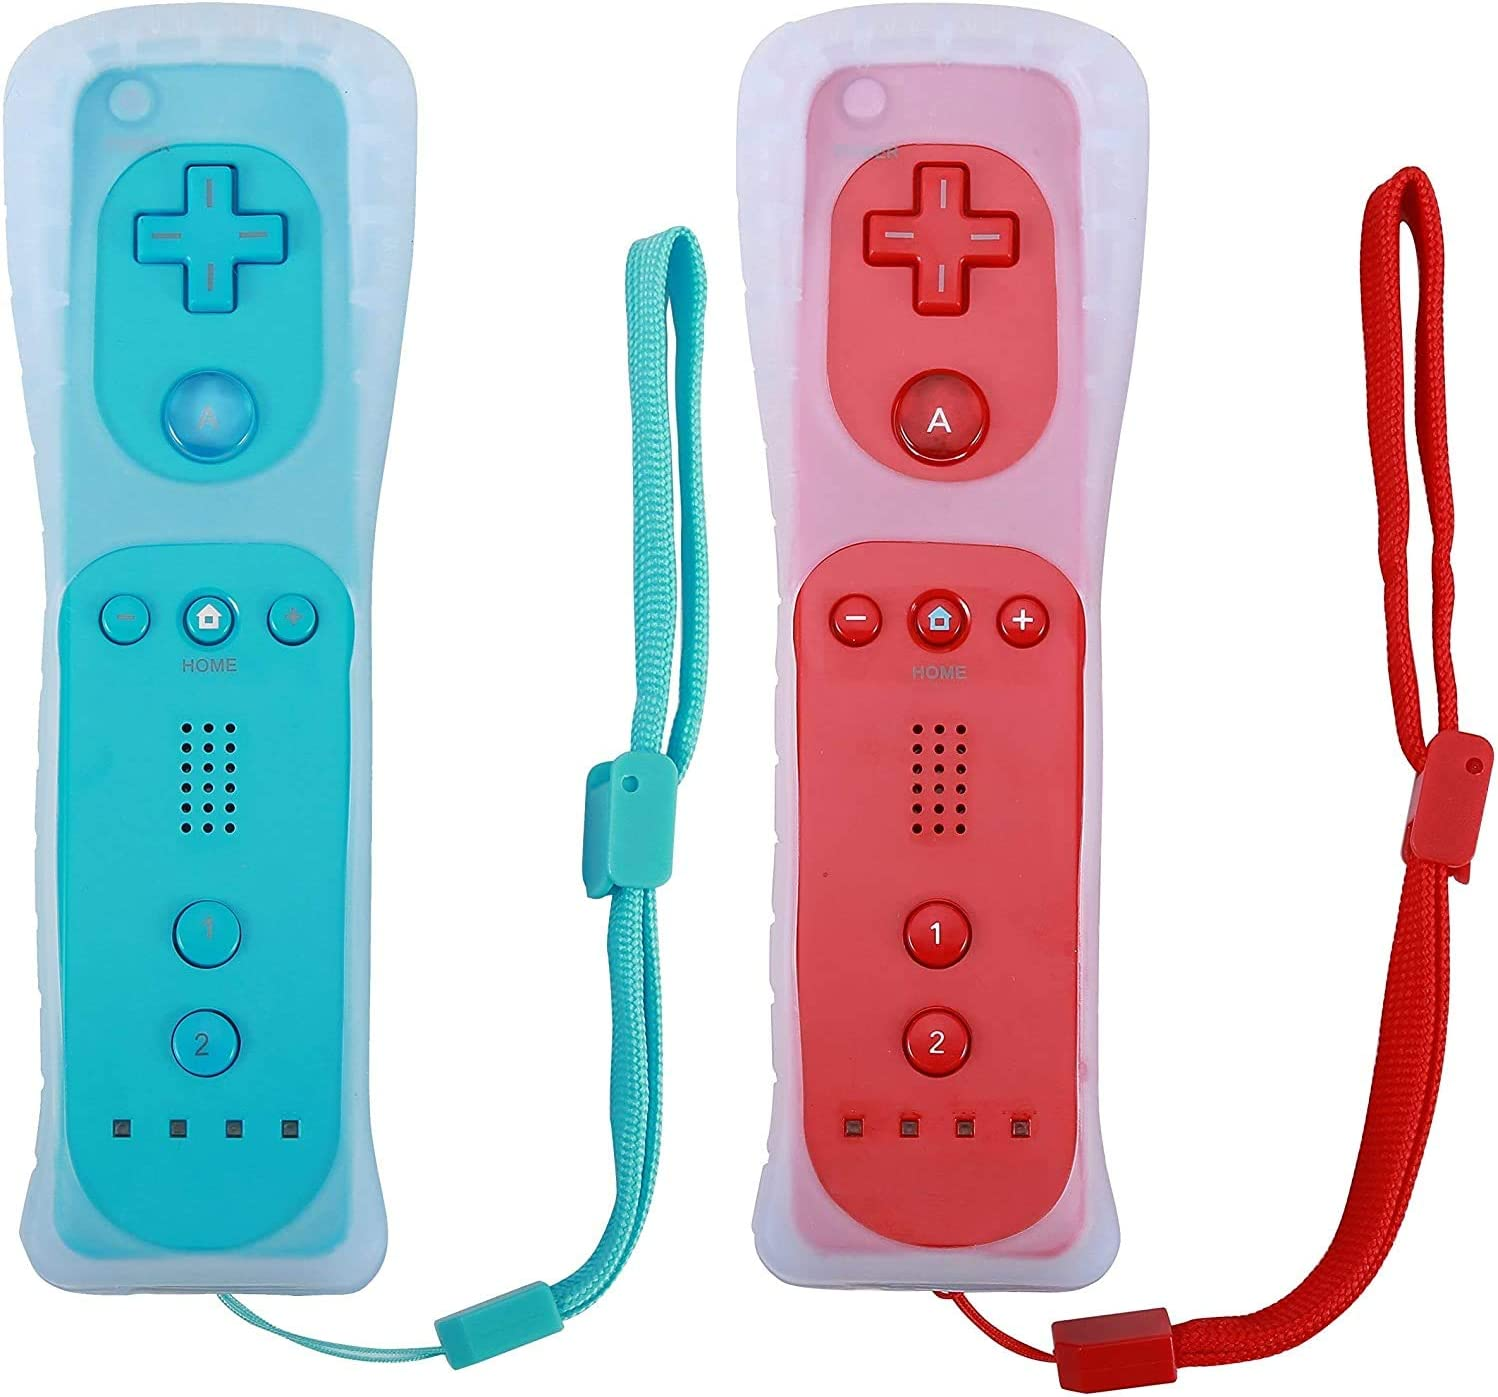 Remote Controller for Wii U Console (Red and Blue,2 Packs)